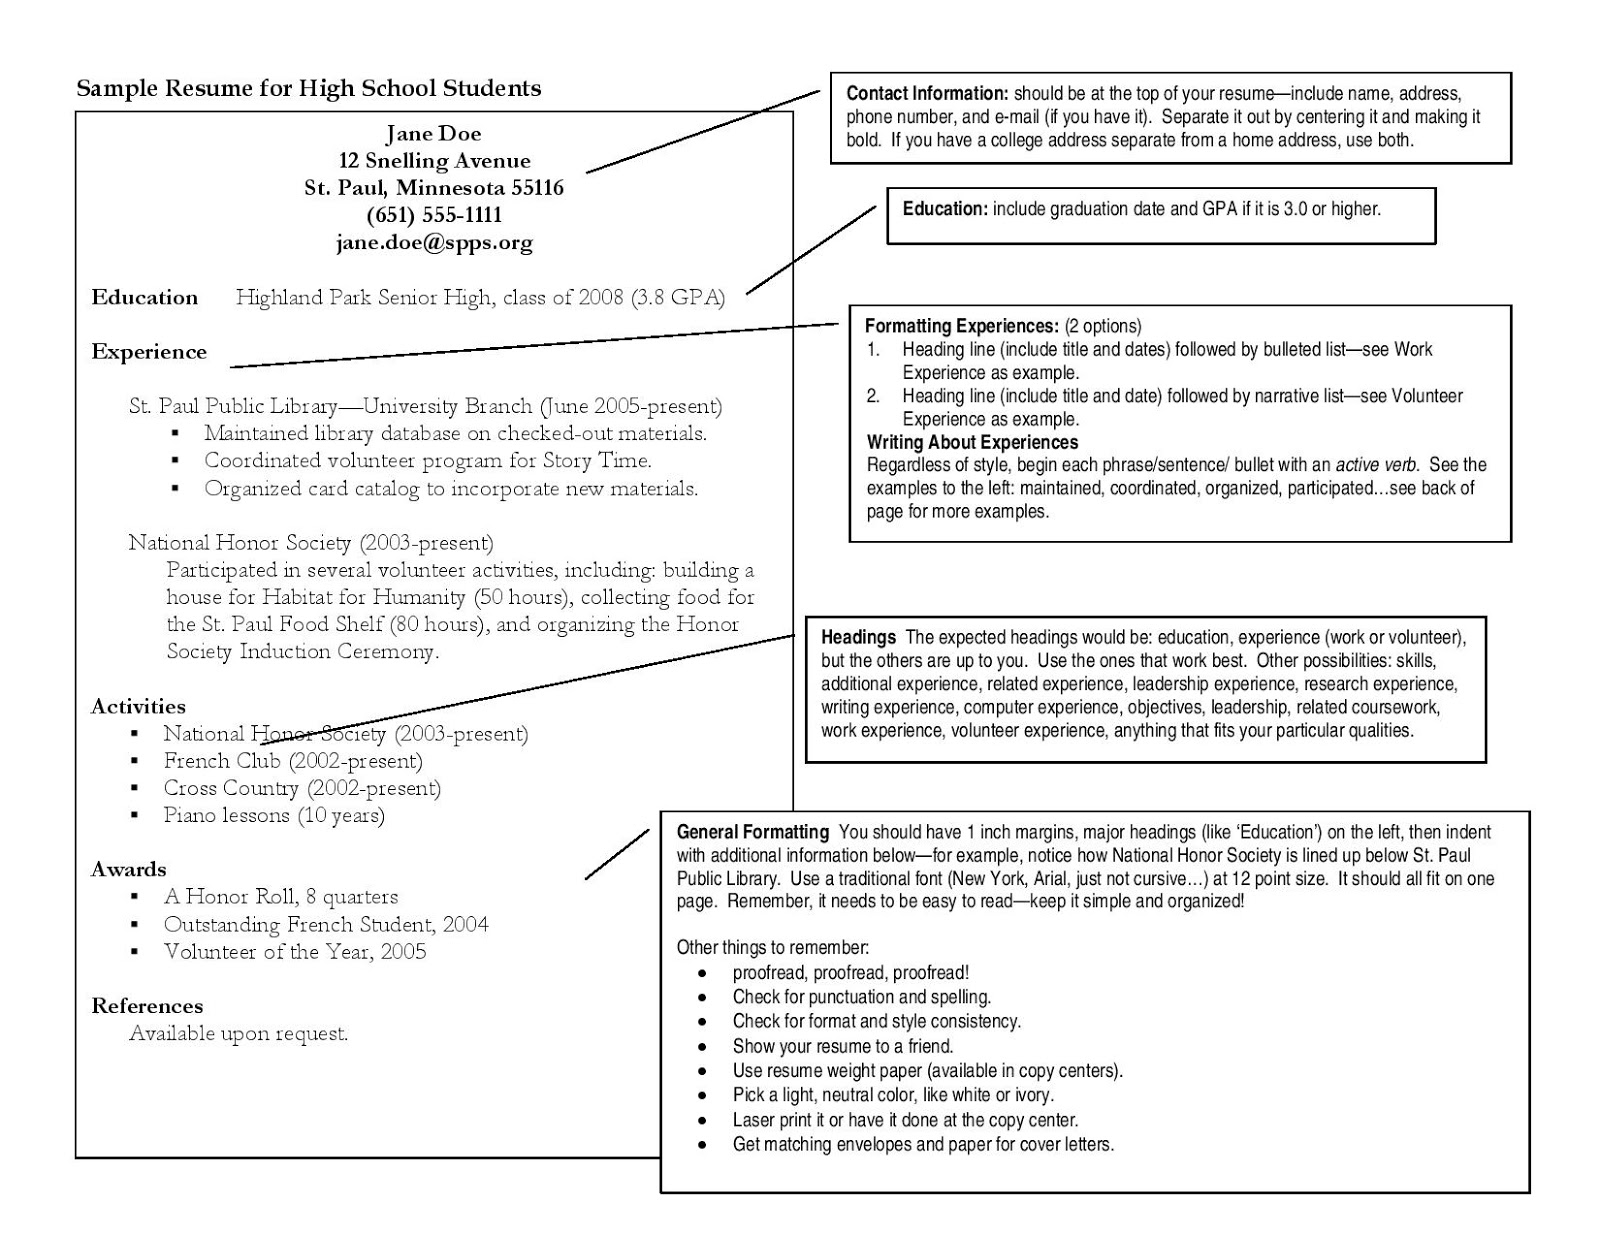 resume keywords and phrases printable questionnaire resume action words phrases pdf resume examples and writing tips resume key words and